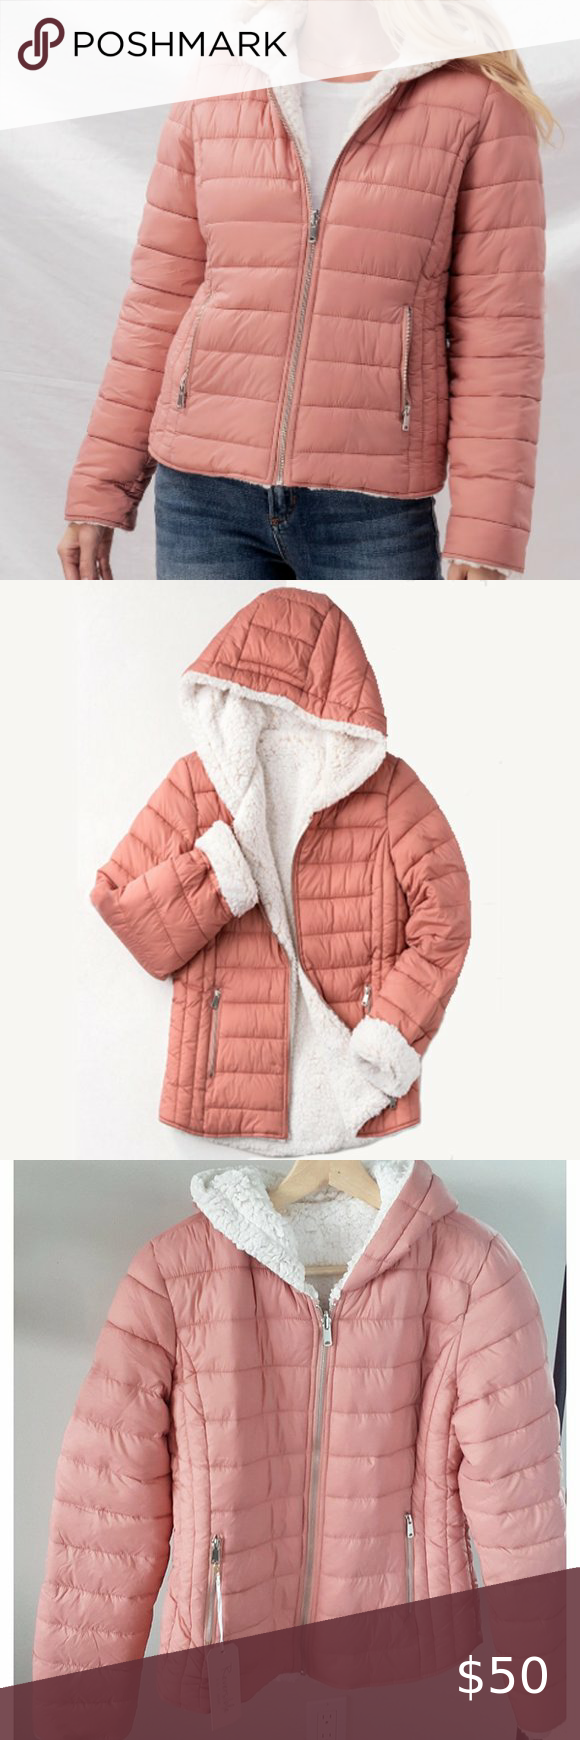 Hooded Sherpa Fleece Puffer Jacket Blush Pink Incredibly Soft And Comfortable Color Is Closer To My Photos These Do Run Fashion Clothes Design Fashion Trends [ 1740 x 580 Pixel ]